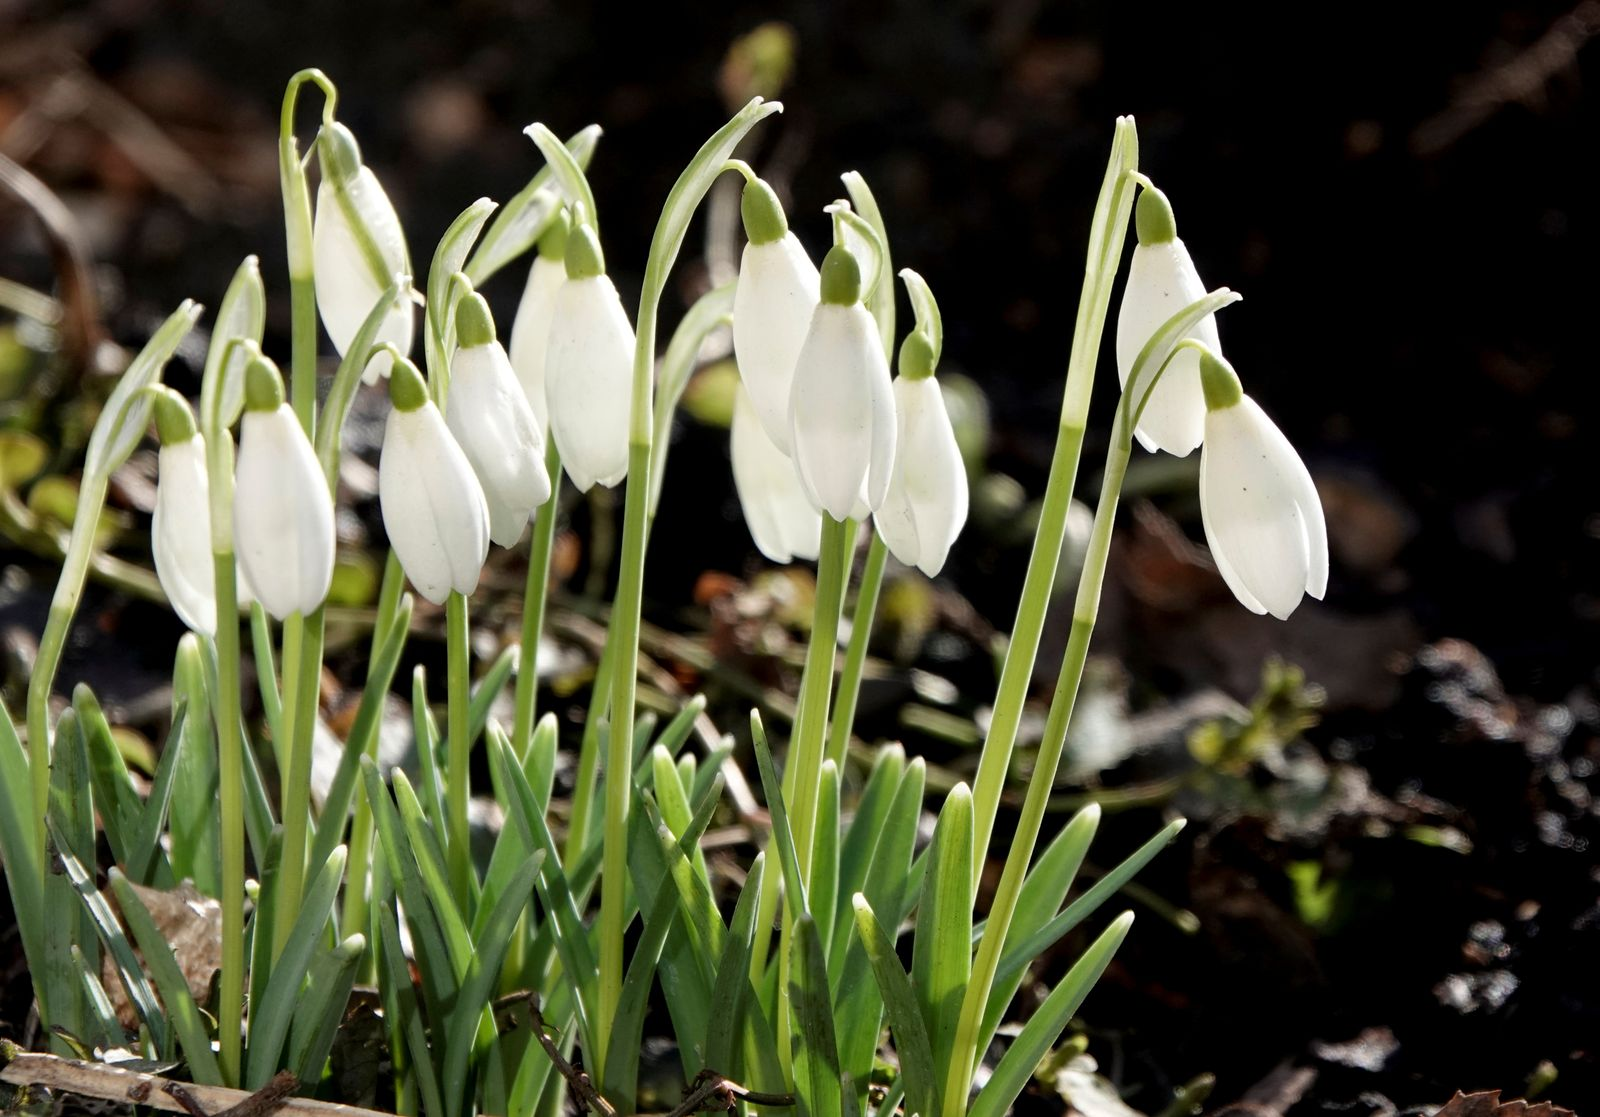 Snowdrop flowers bloom in central Moscow